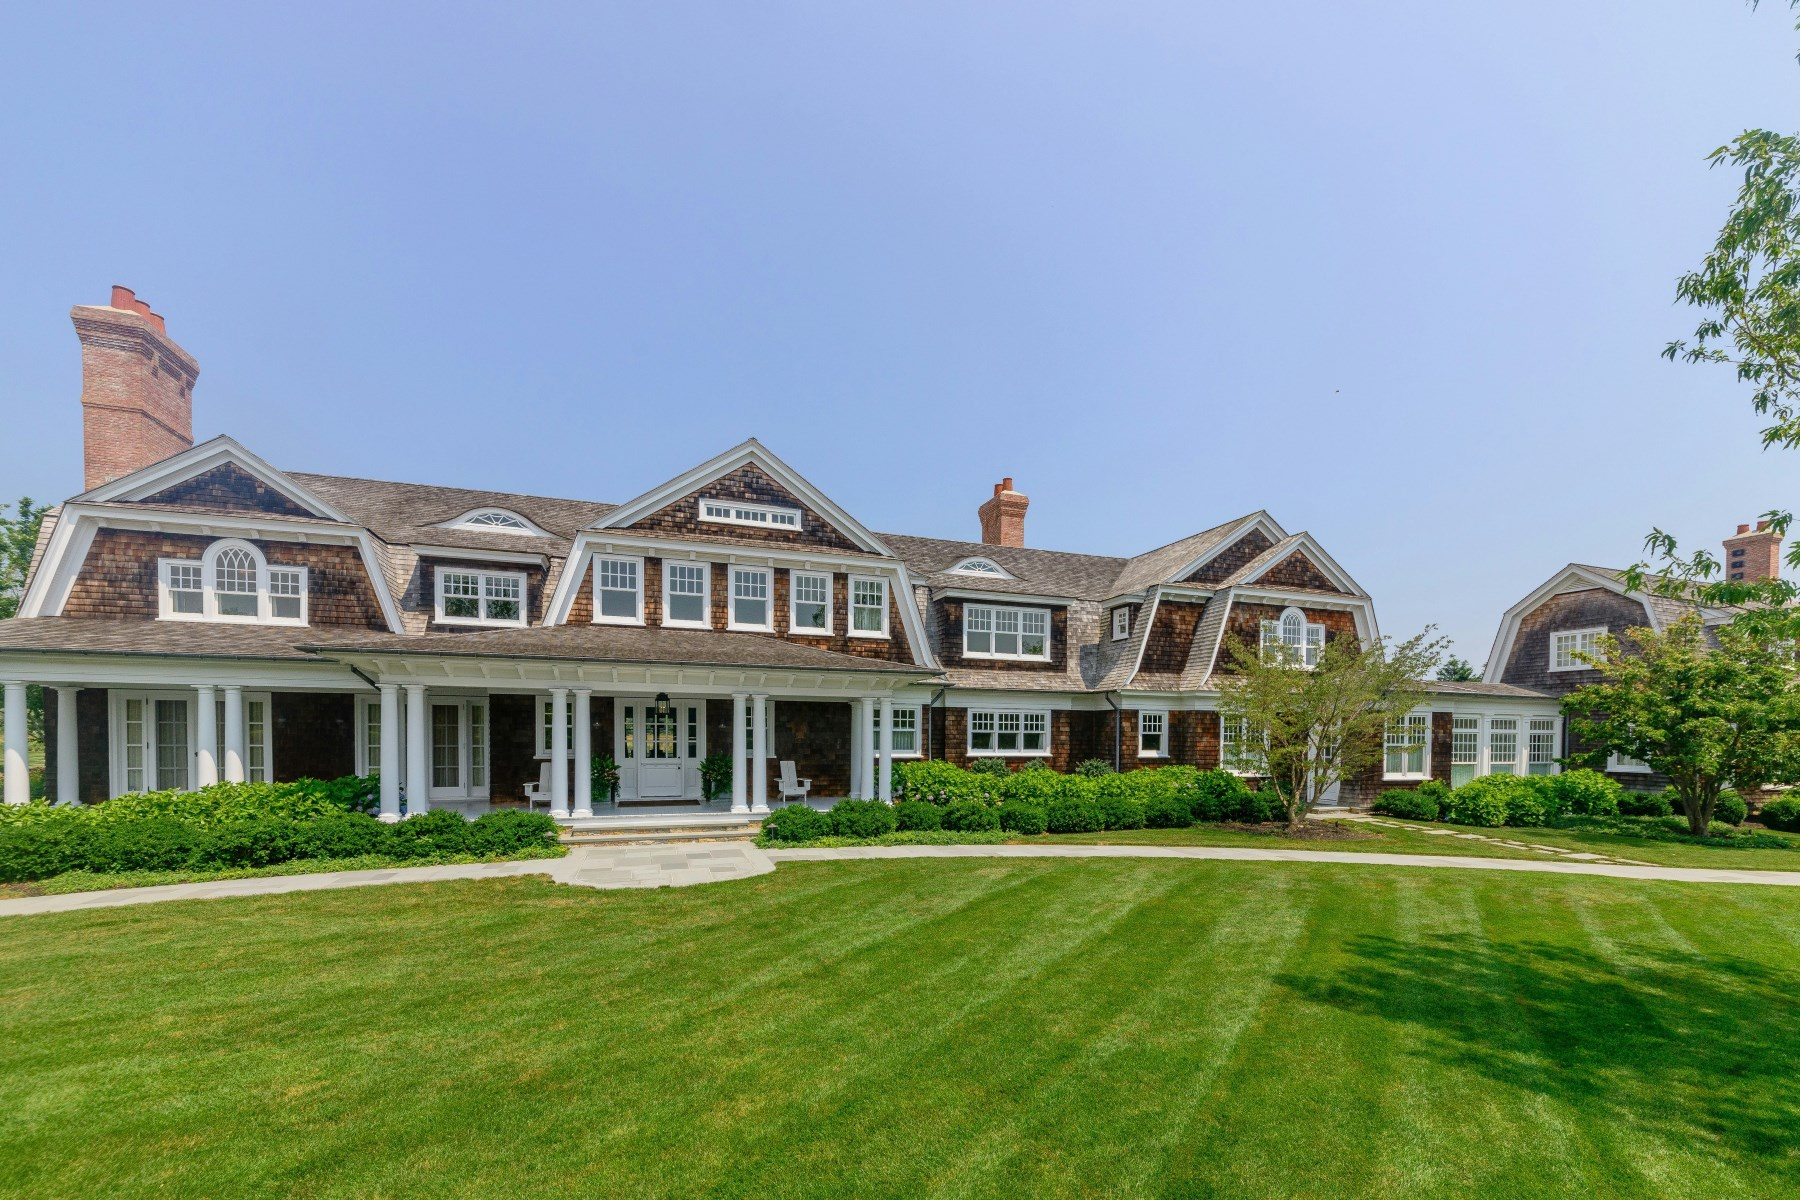 Casa Unifamiliar por un Venta en Further Lane Farm East Hampton Village, East Hampton, Nueva York 11937 Estados Unidos